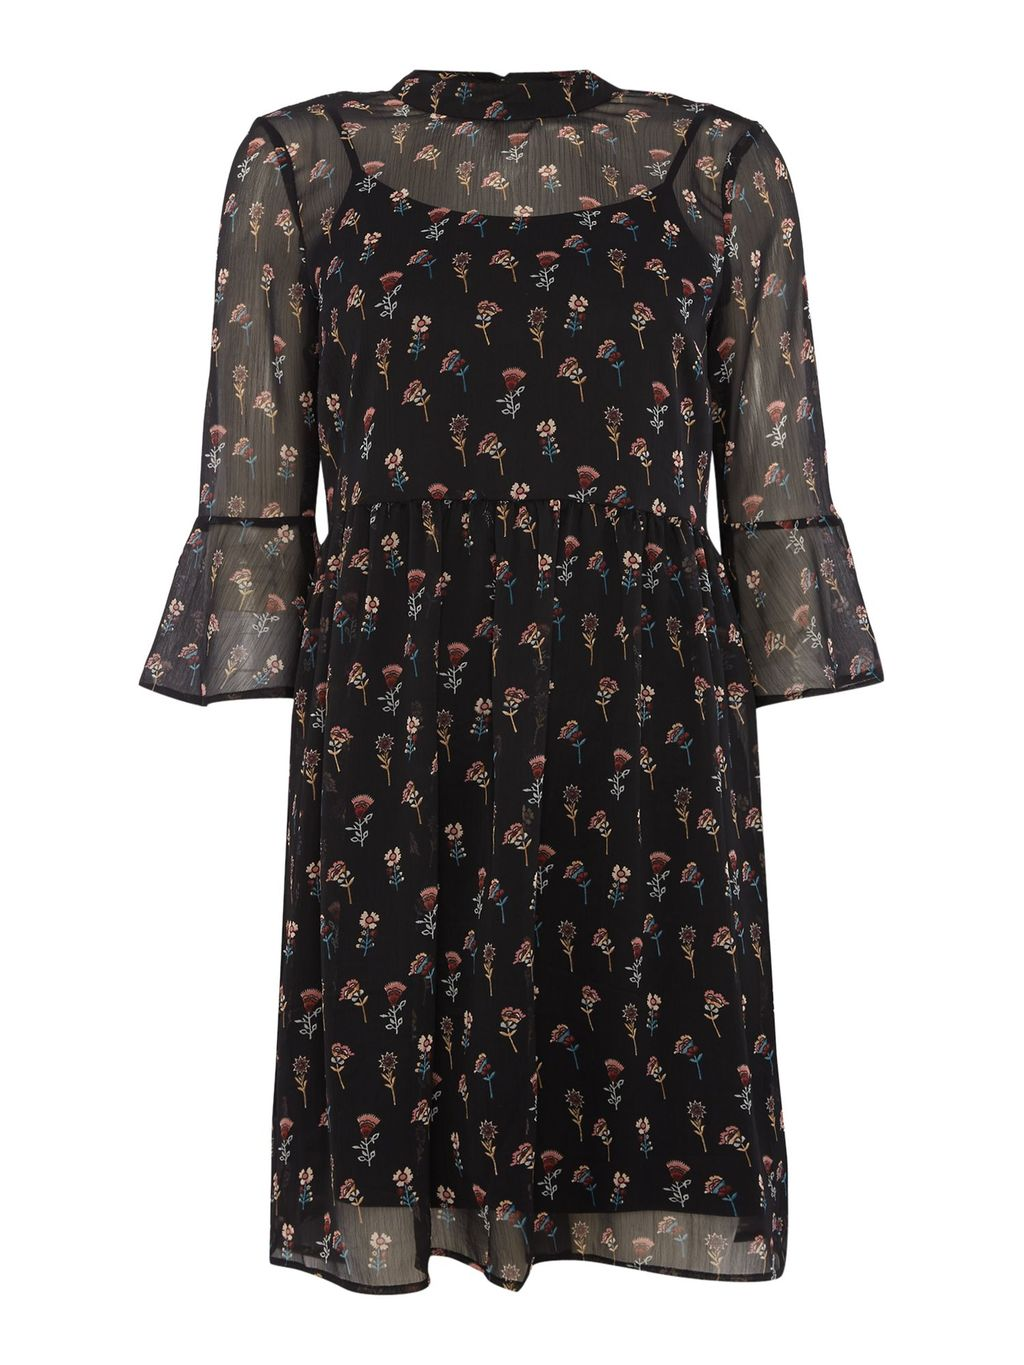 3/4 Sleeve High Neck Dress, Black - sleeve style: volant; secondary colour: nude; predominant colour: black; occasions: casual, creative work; length: just above the knee; fit: fitted at waist & bust; style: fit & flare; neckline: collarstand; fibres: polyester/polyamide - 100%; sleeve length: long sleeve; texture group: sheer fabrics/chiffon/organza etc.; pattern type: fabric; pattern: patterned/print; season: a/w 2016; wardrobe: highlight